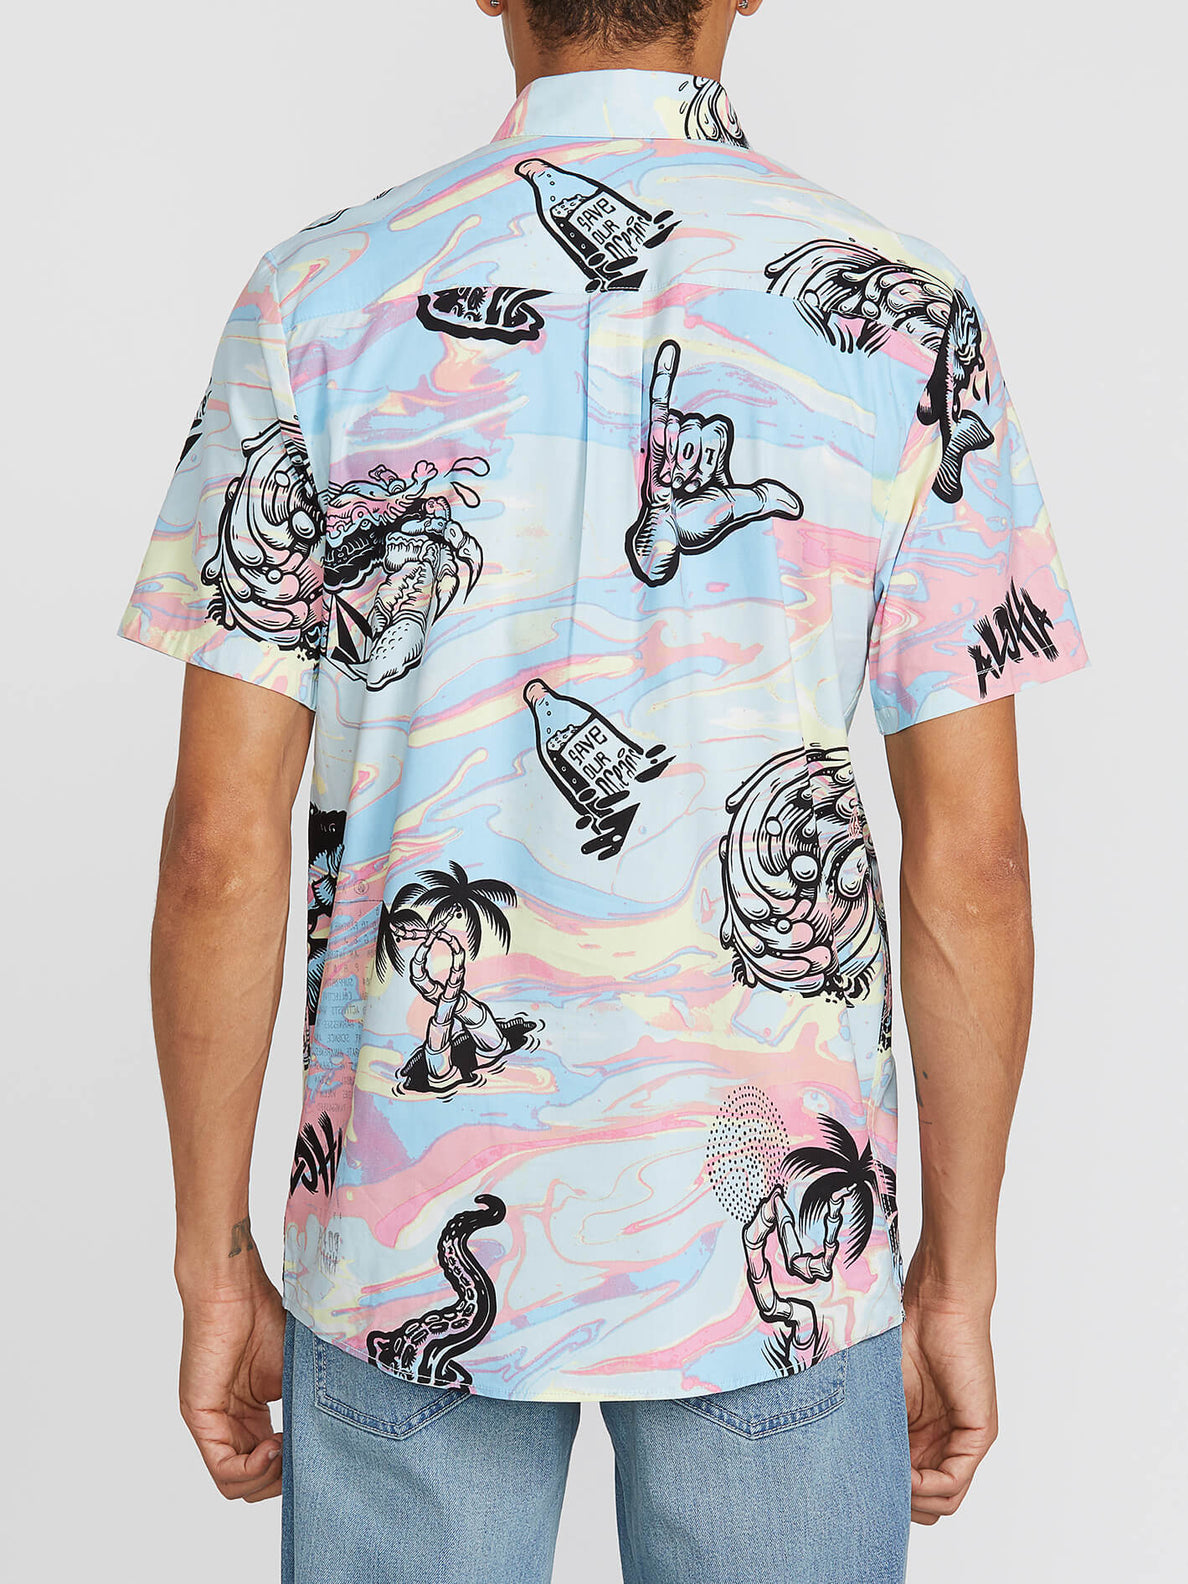 Save Our Oceans Short Sleeve - Multi (A0441906_MLT) [B]